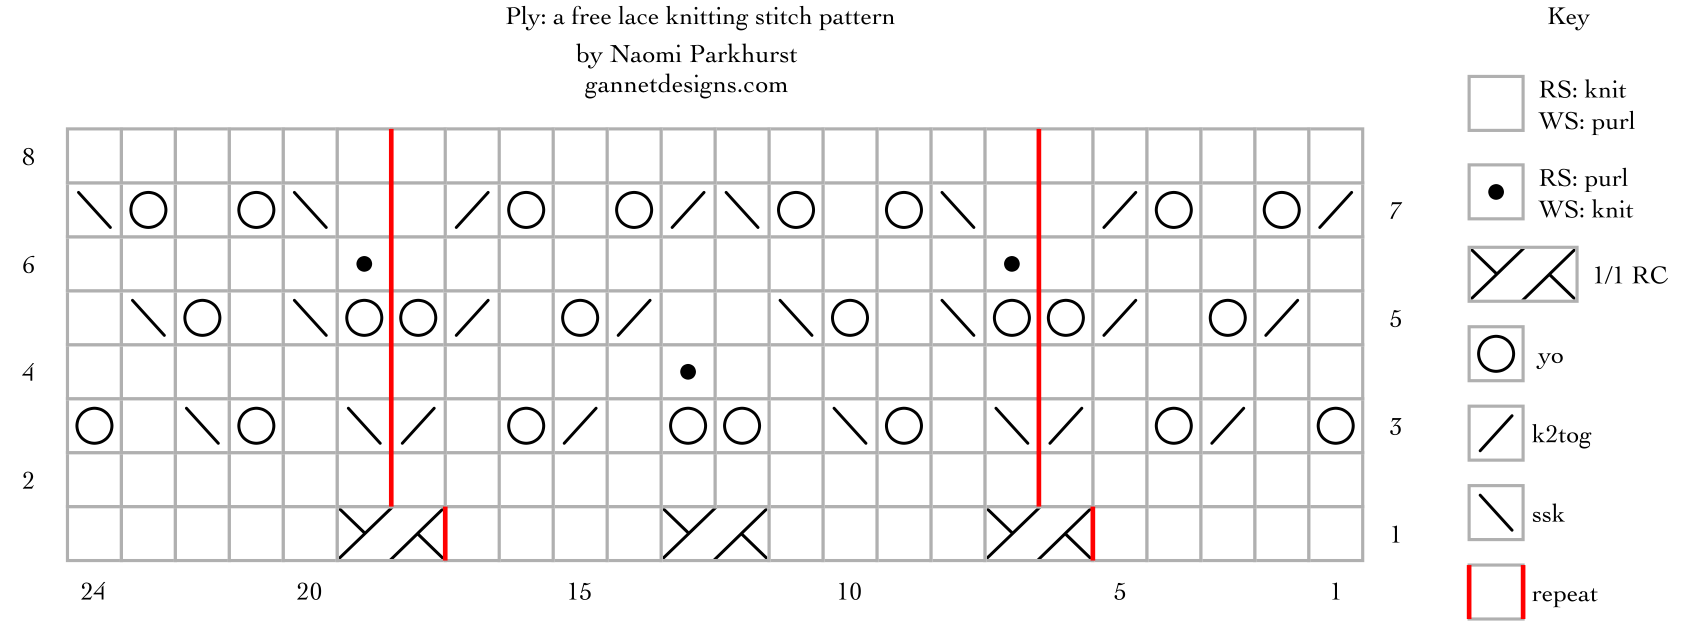 Ply: a free lace knitting stitch pattern, by Naomi Parkhurst (chart)